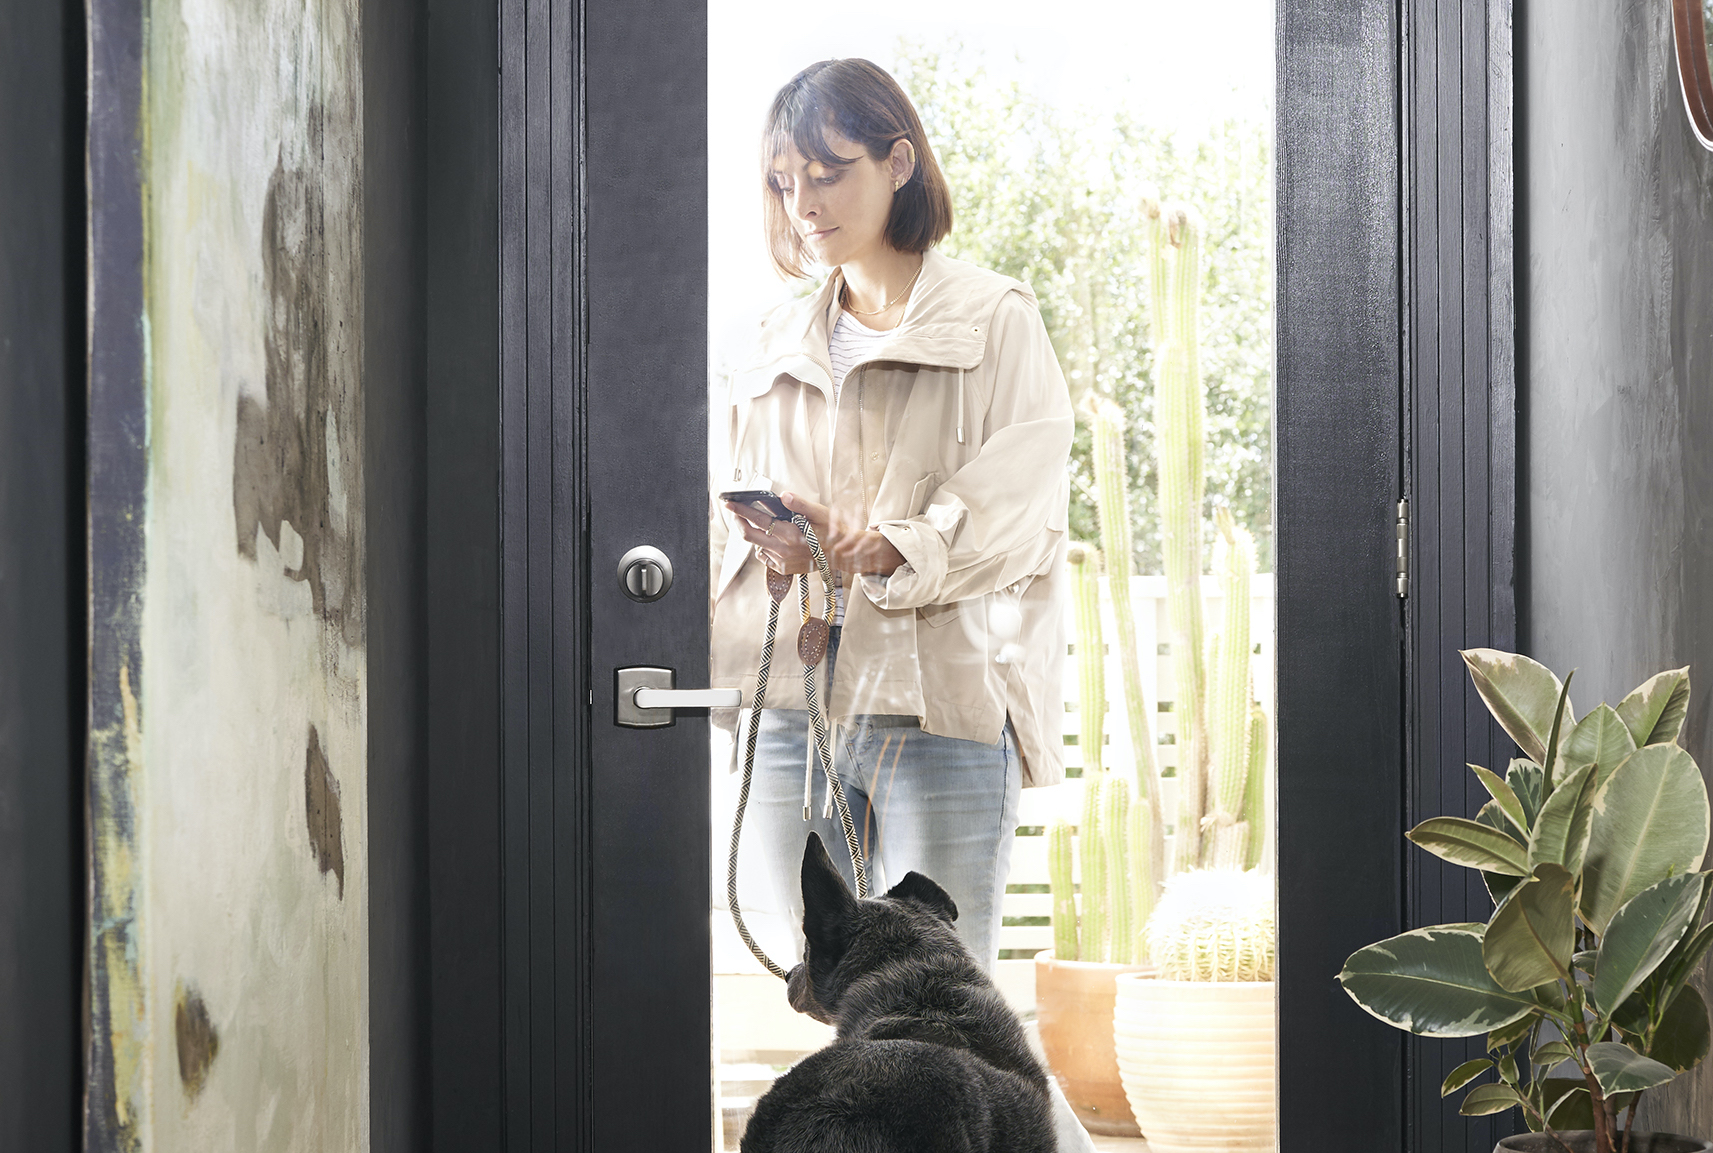 The Level Bolt and Level Touch smart locks are a cut above the competition in design and usability 4